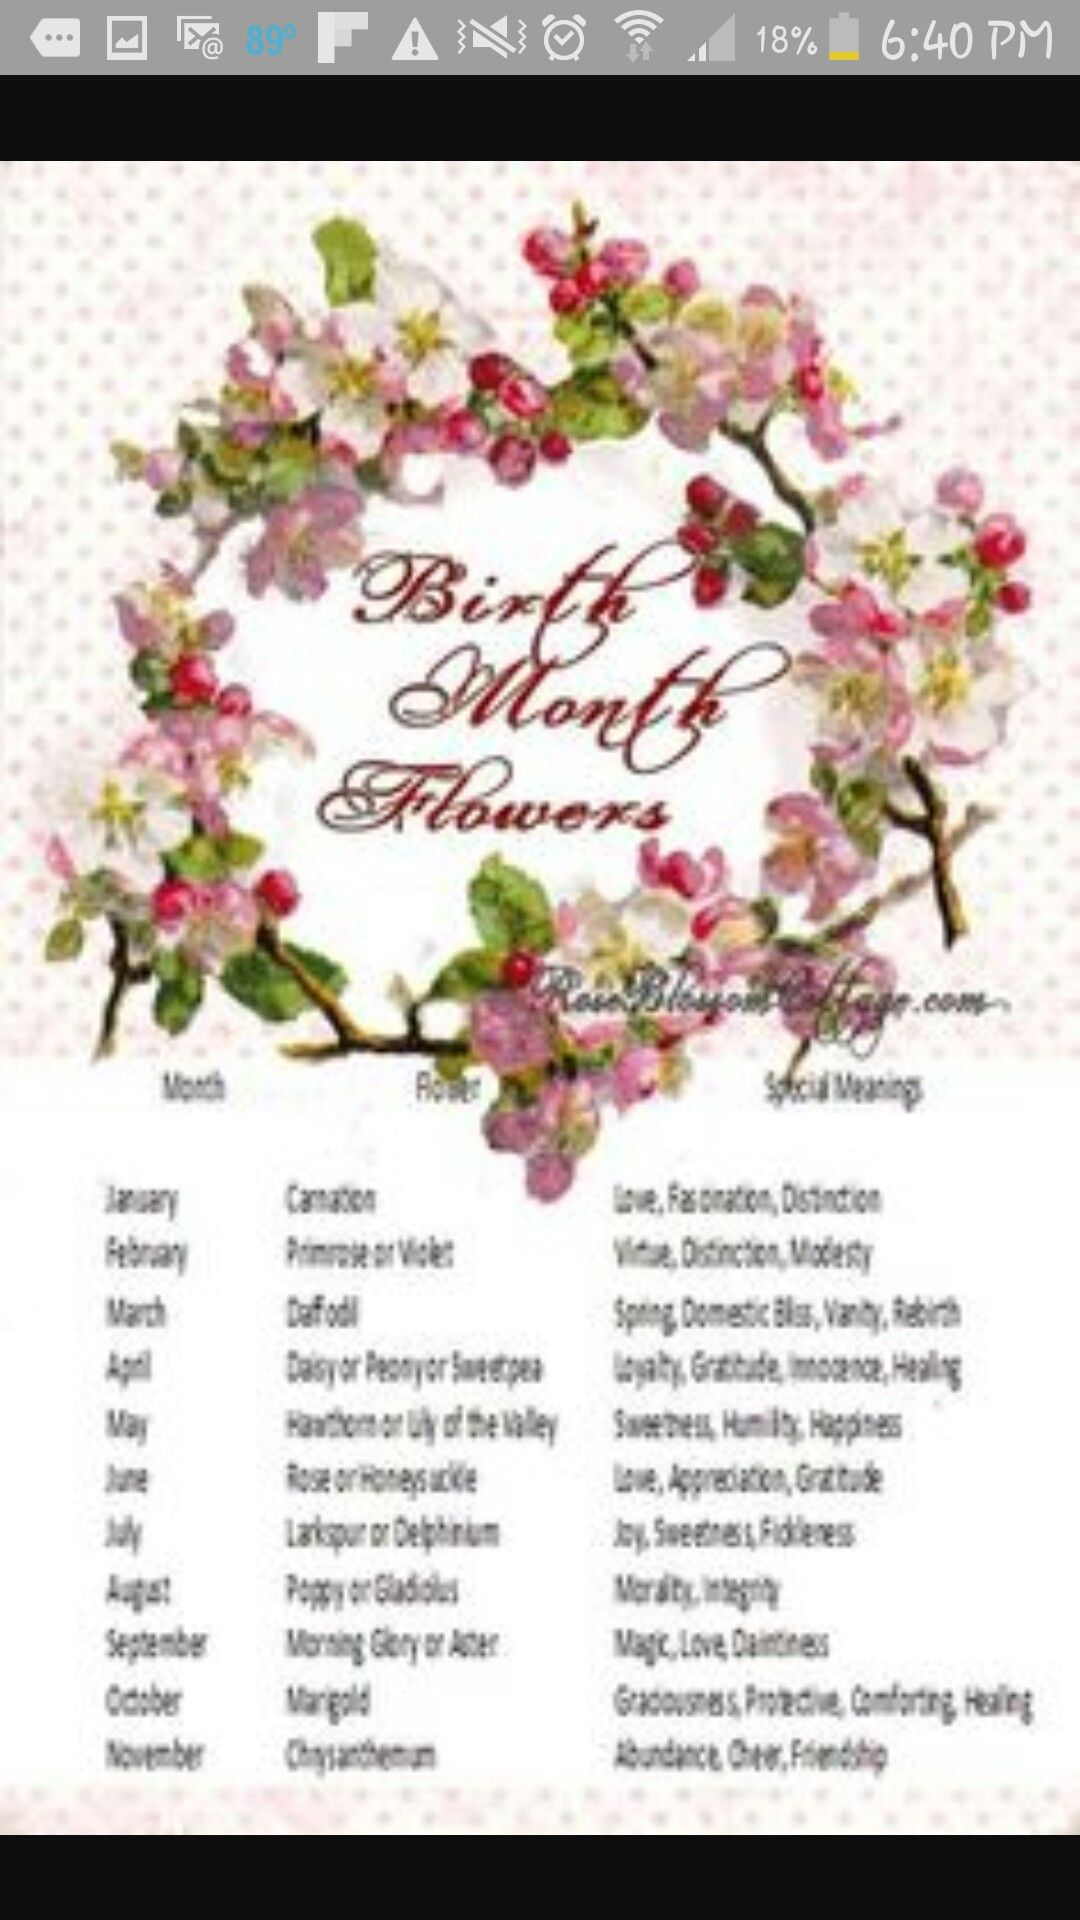 Birth flowers image by Patti Welch on •MARCH madness